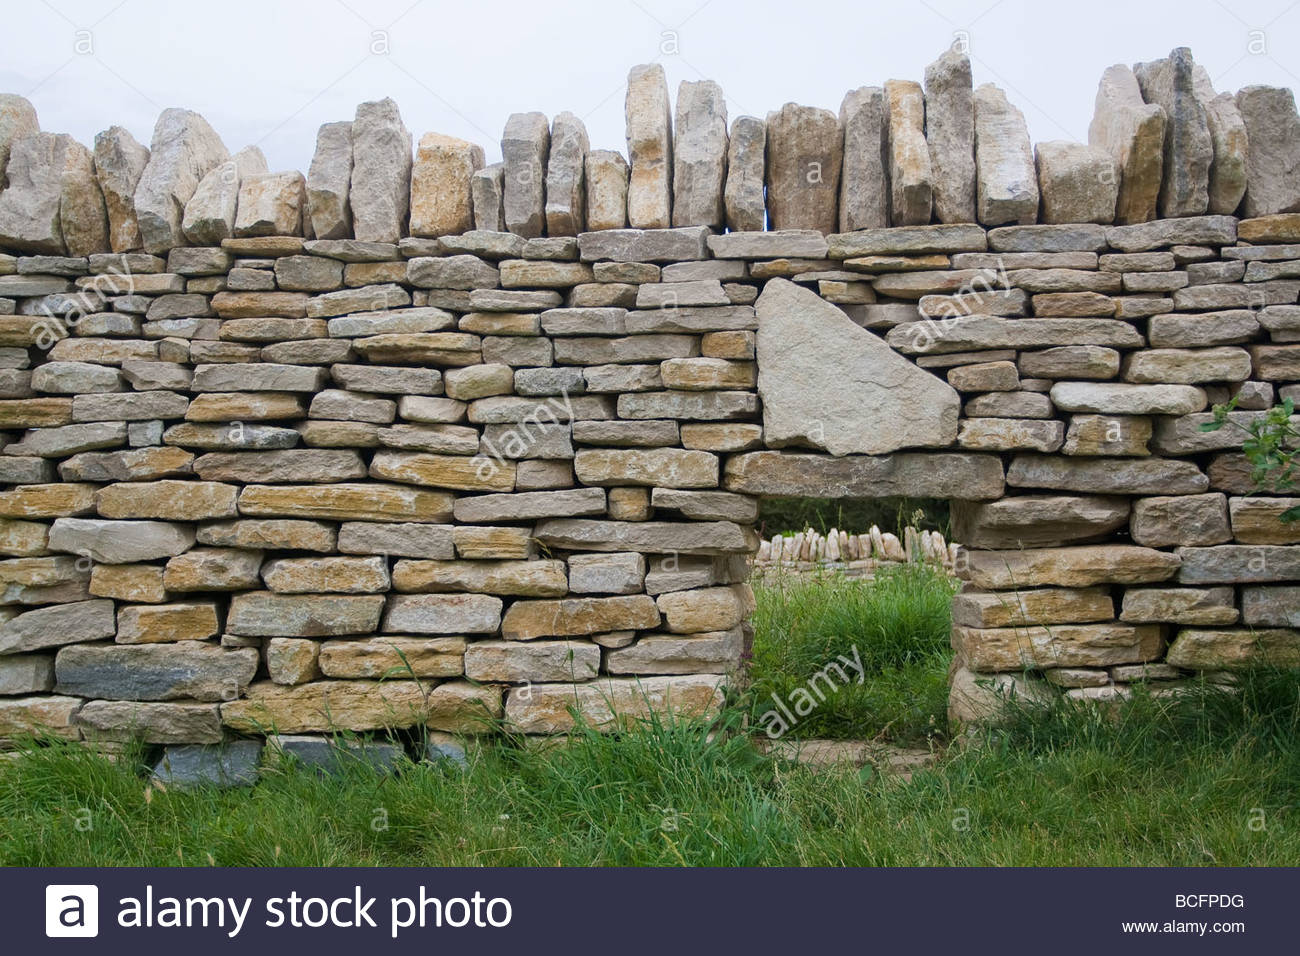 Prime Dry Stone Wall With Hogget Hole Stock Photo Royalty Free Image Largest Home Design Picture Inspirations Pitcheantrous